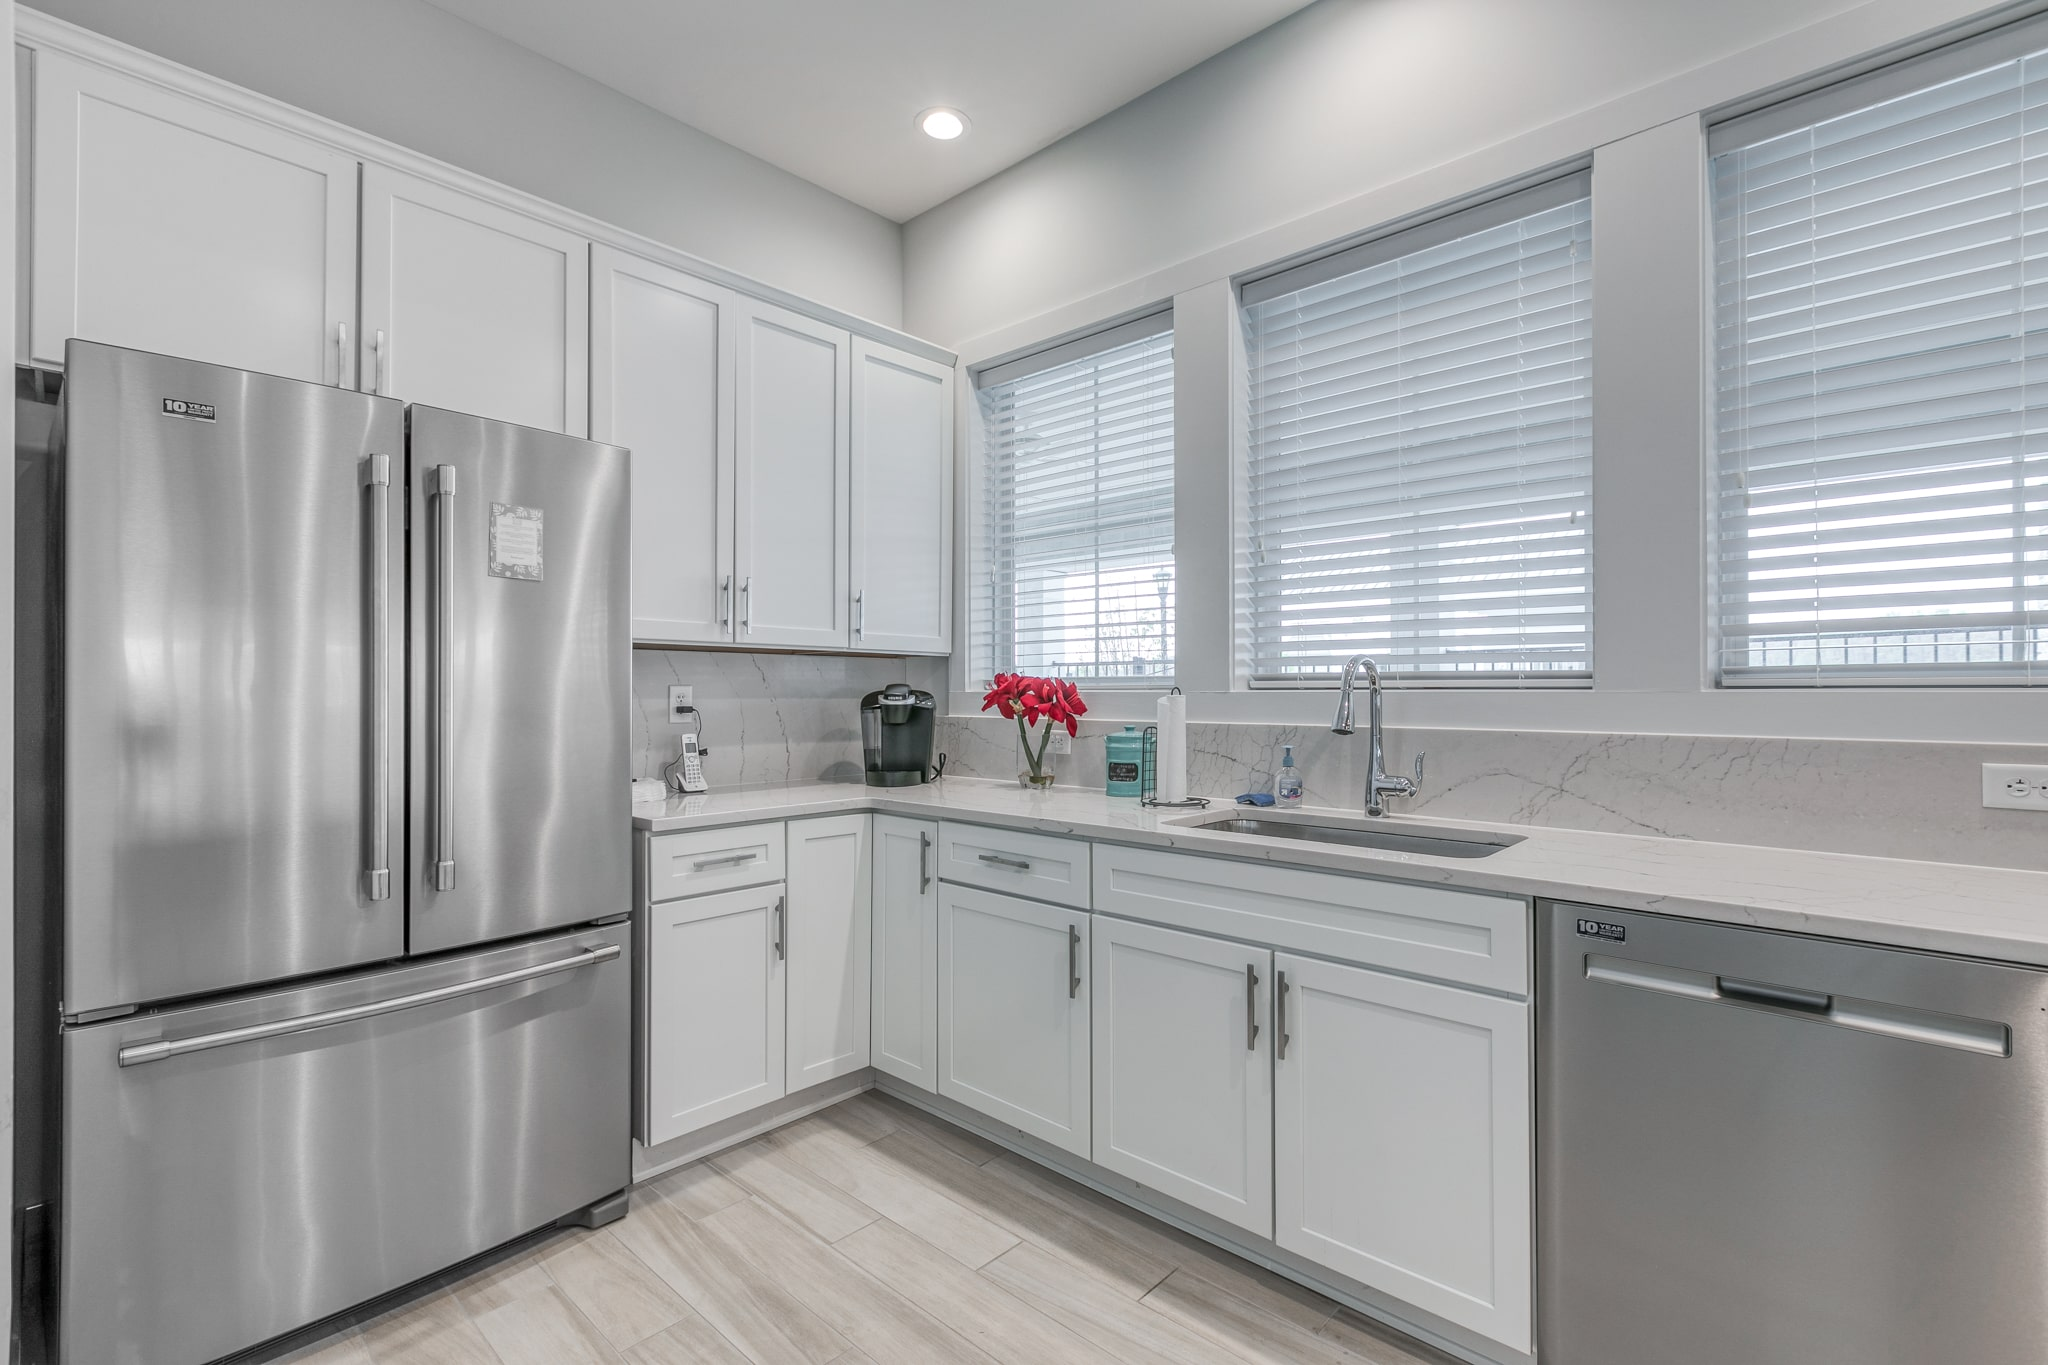 Image of the kitchen area inside the Bay Bride Cove Community